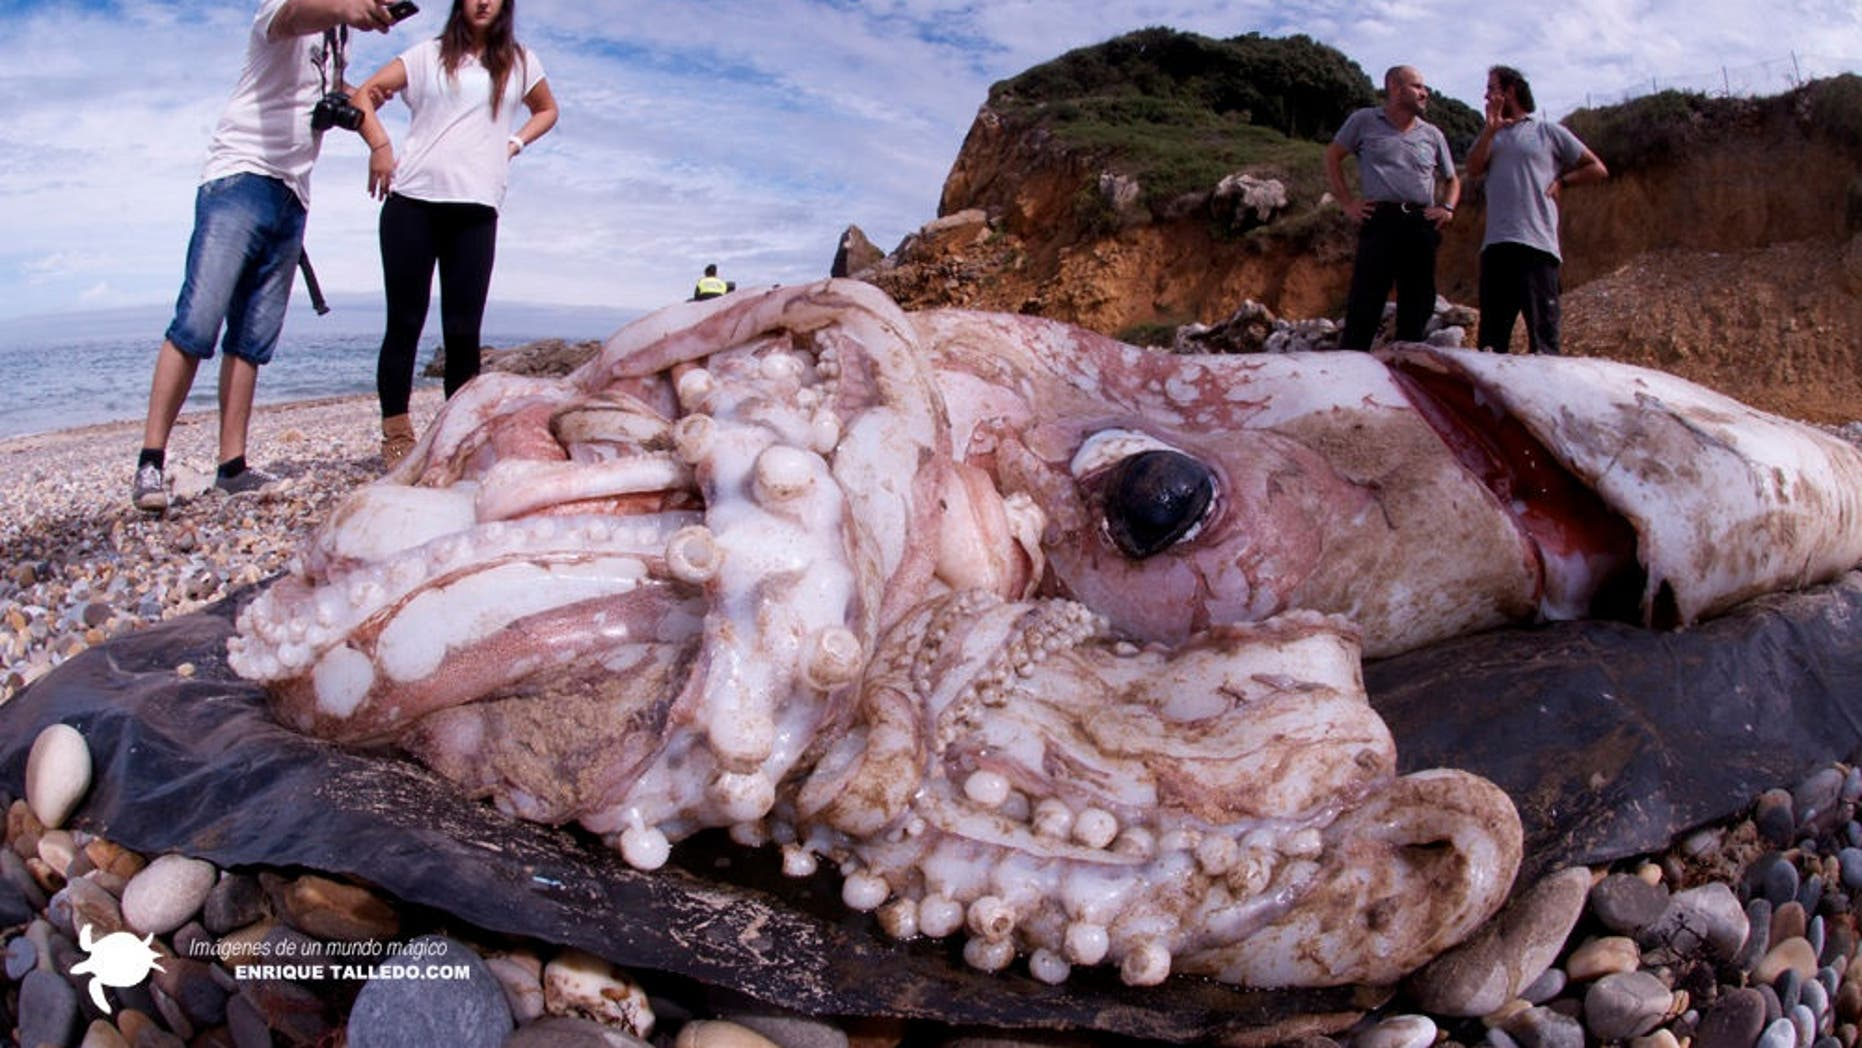 On Oct. 1, 2013, a 30-foot-long giant squid washed ashore in the Spanish community of Cantabria.